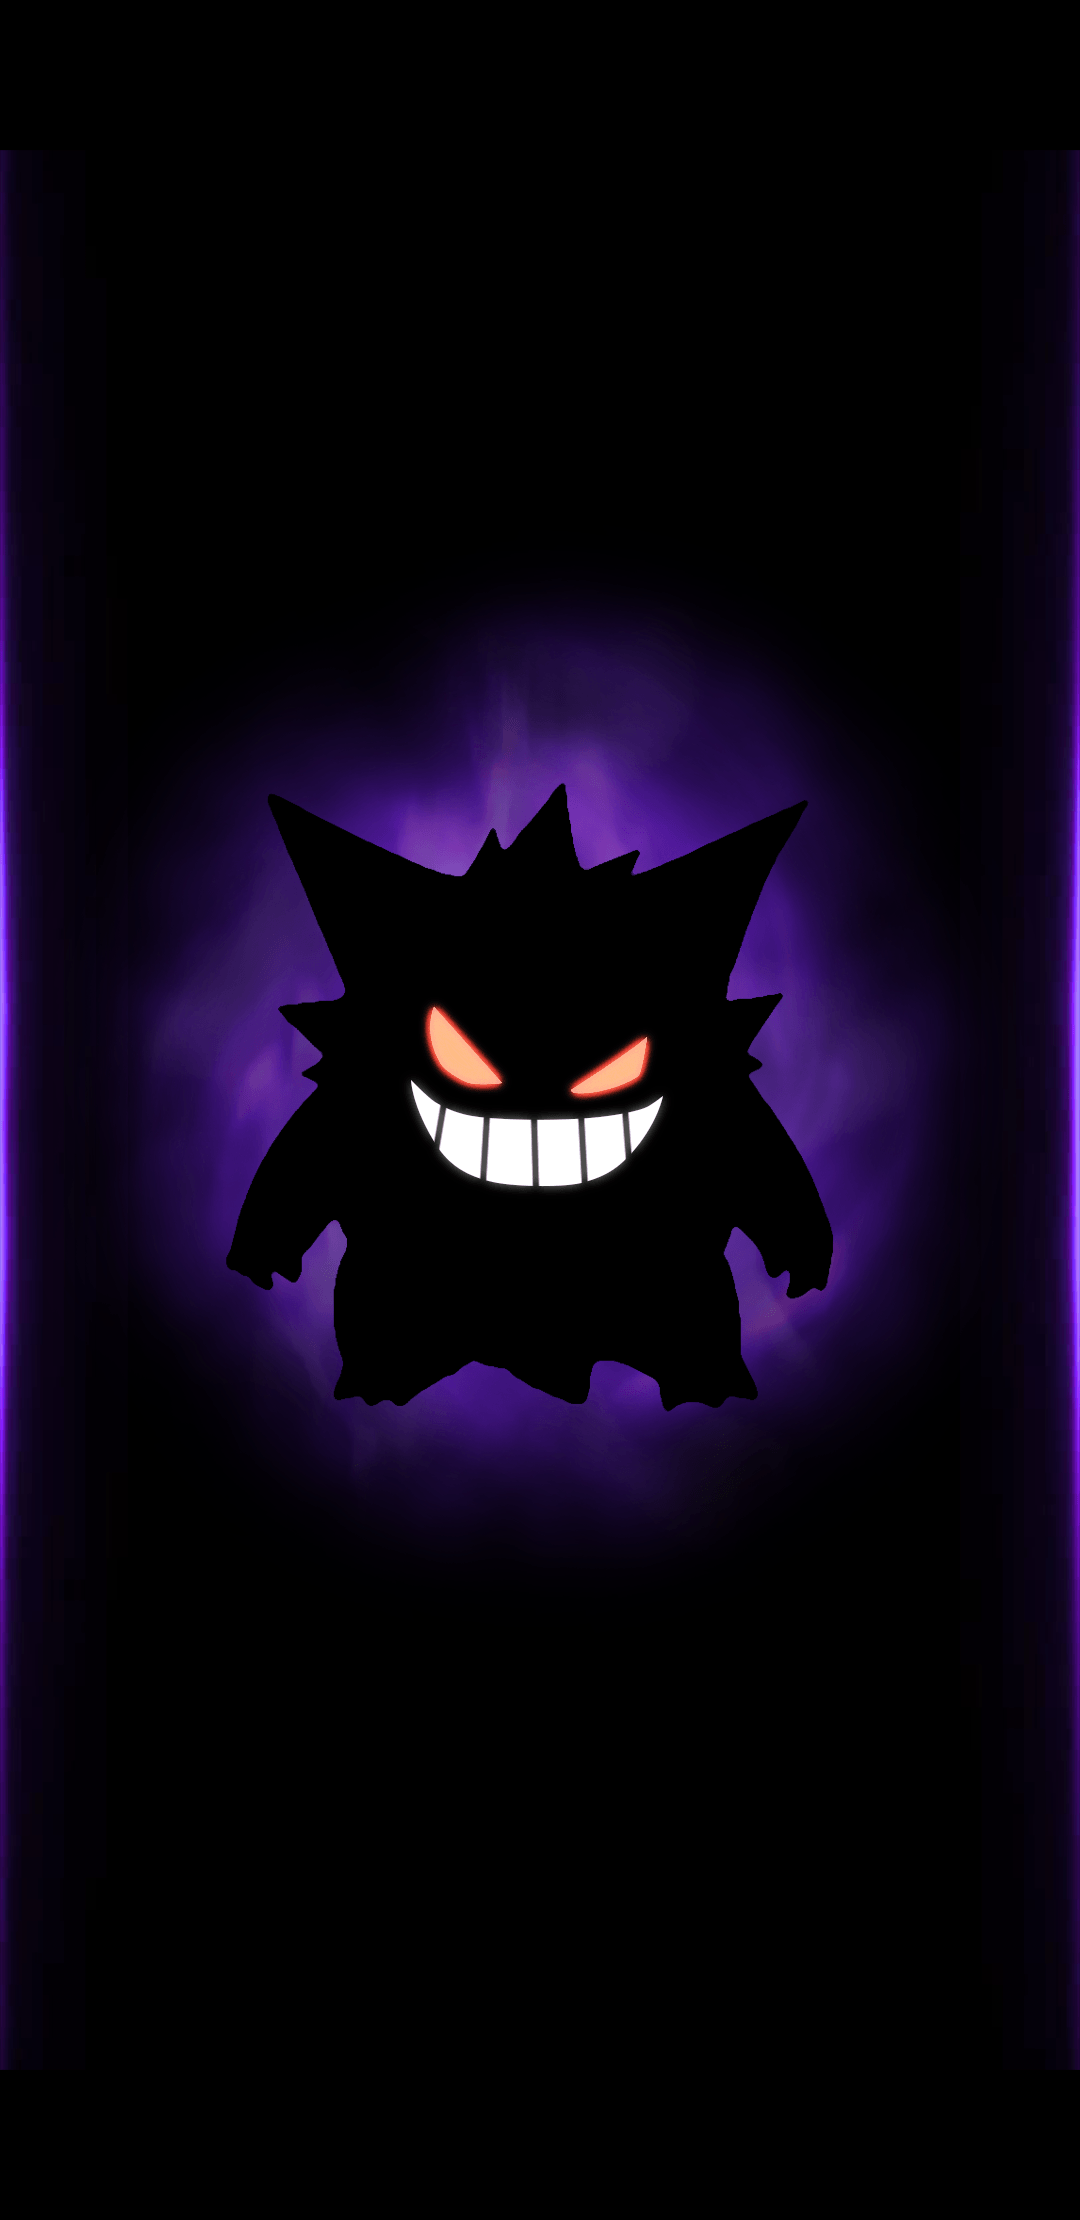 Gengar Phone Wallpaper - Album on Imgur